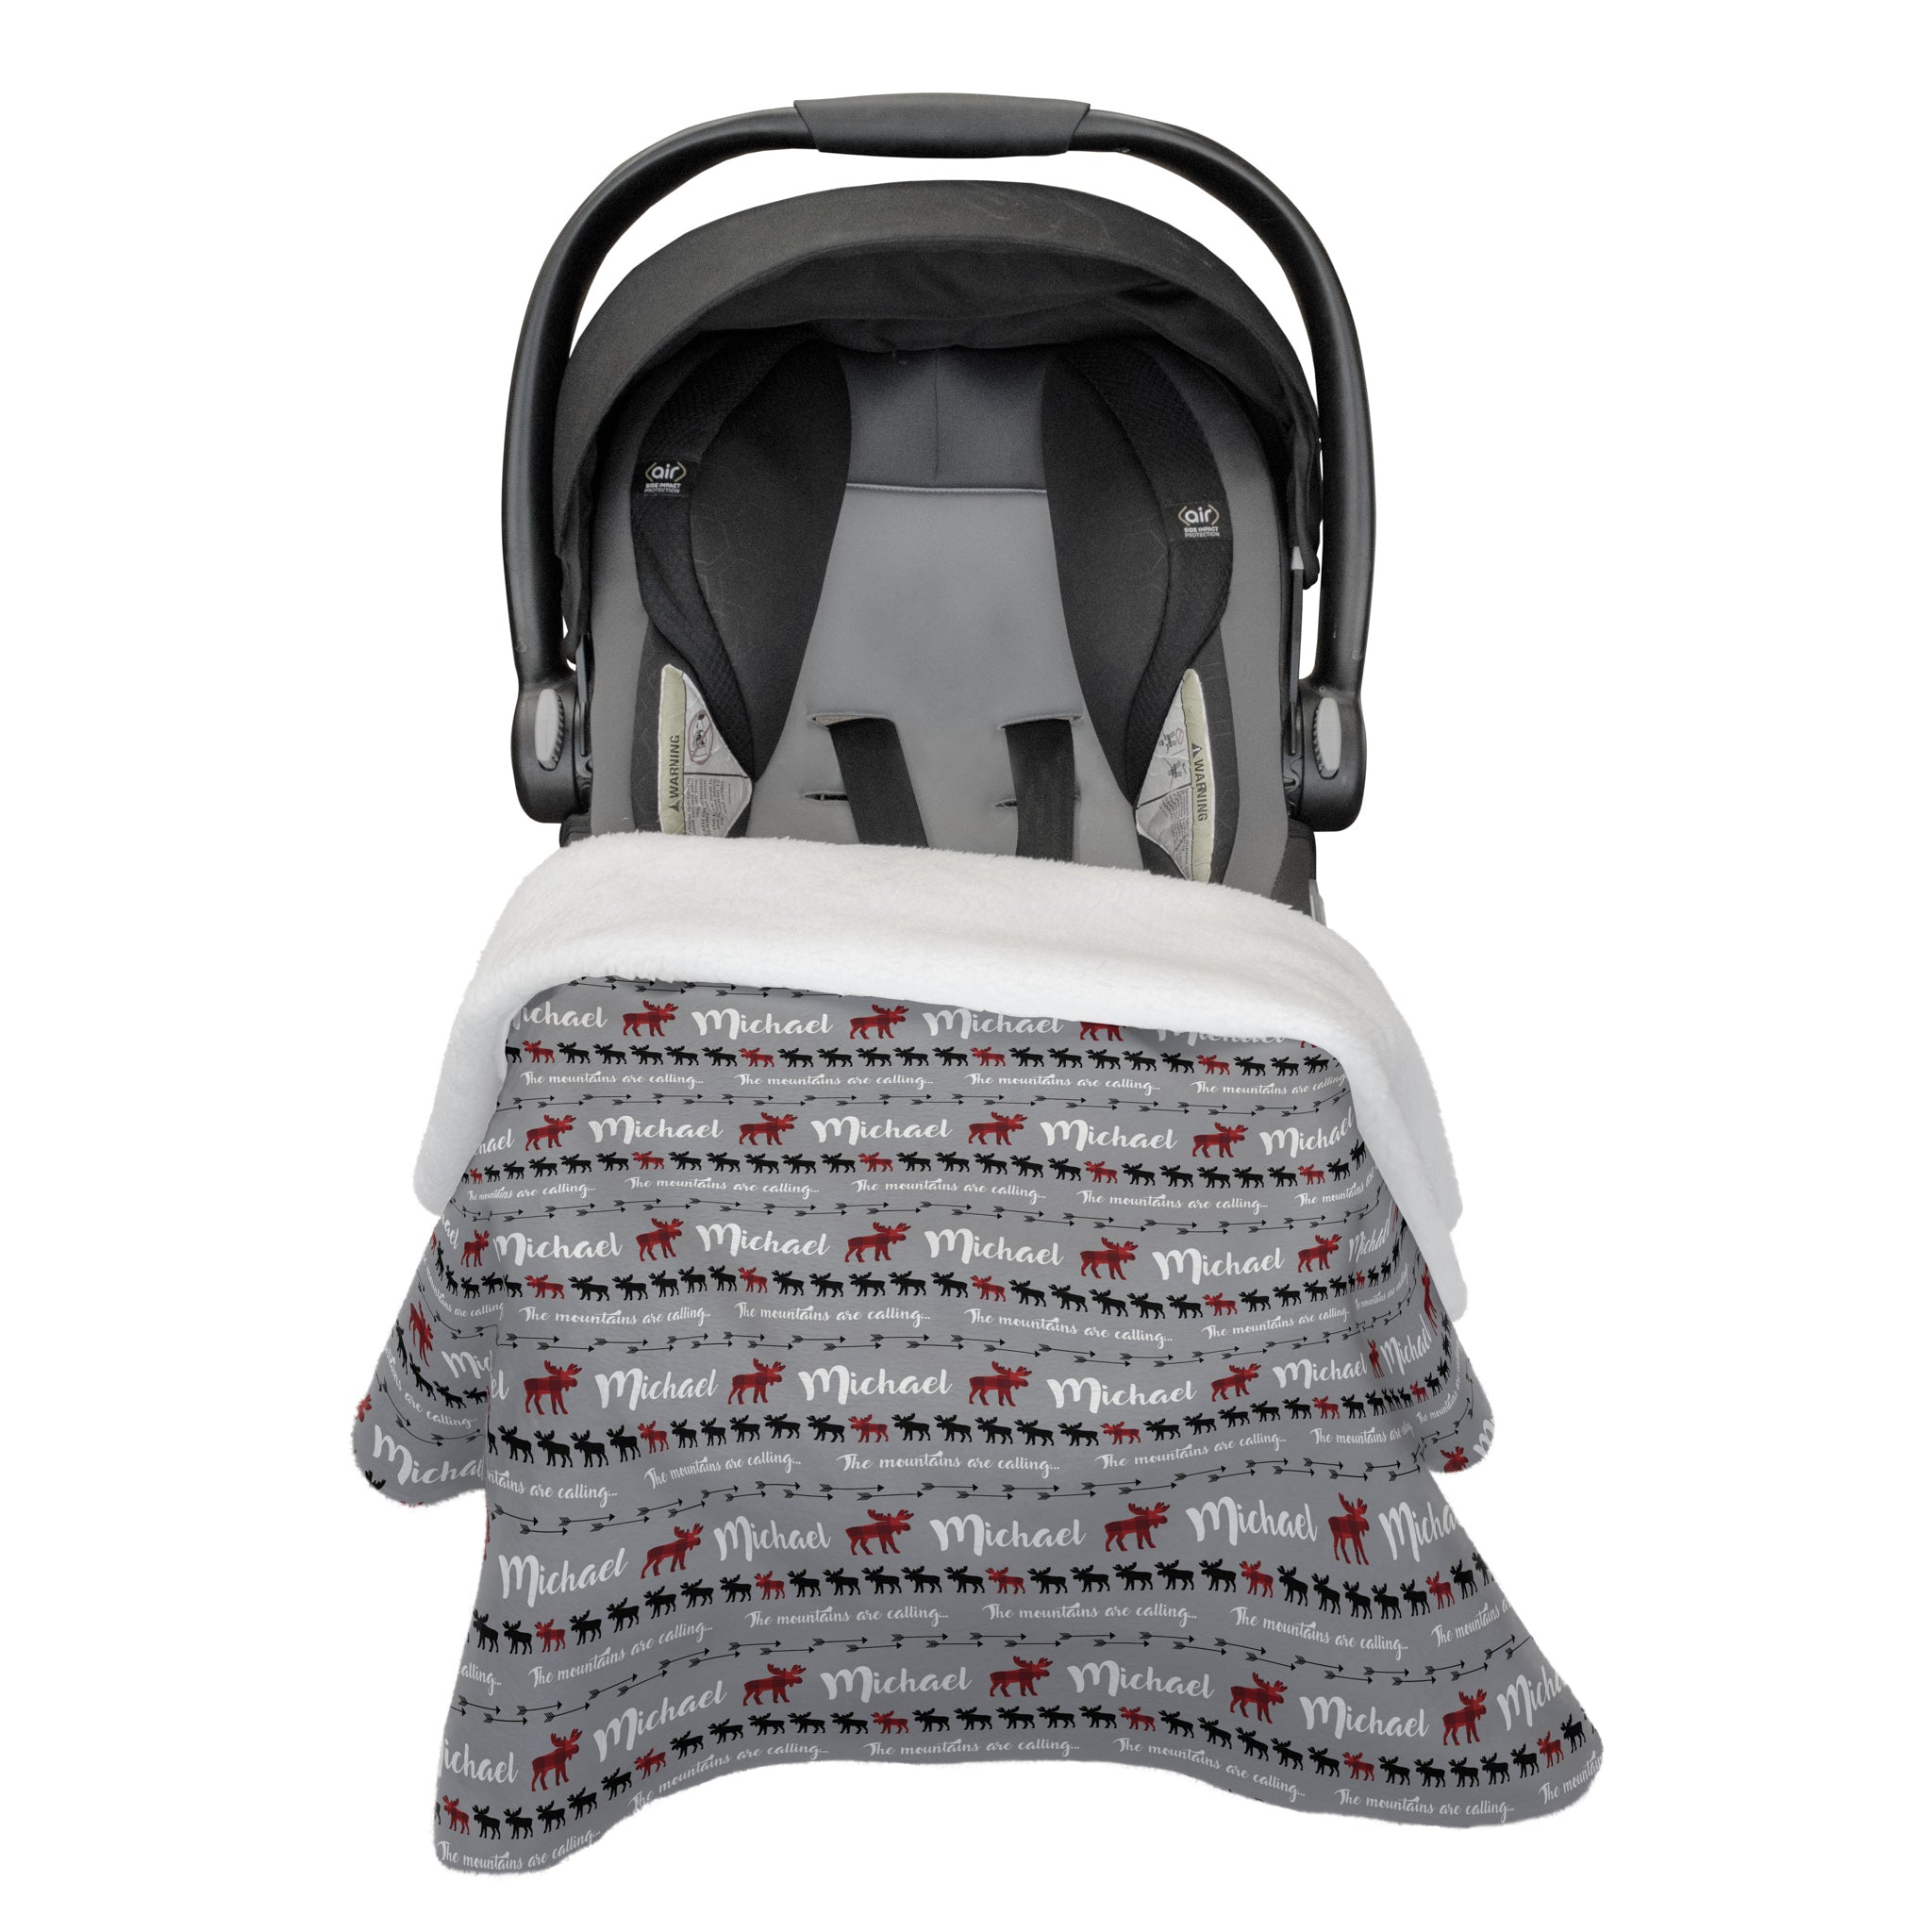 Sam's Moose Mountains Are Calling | Car Seat Blanket